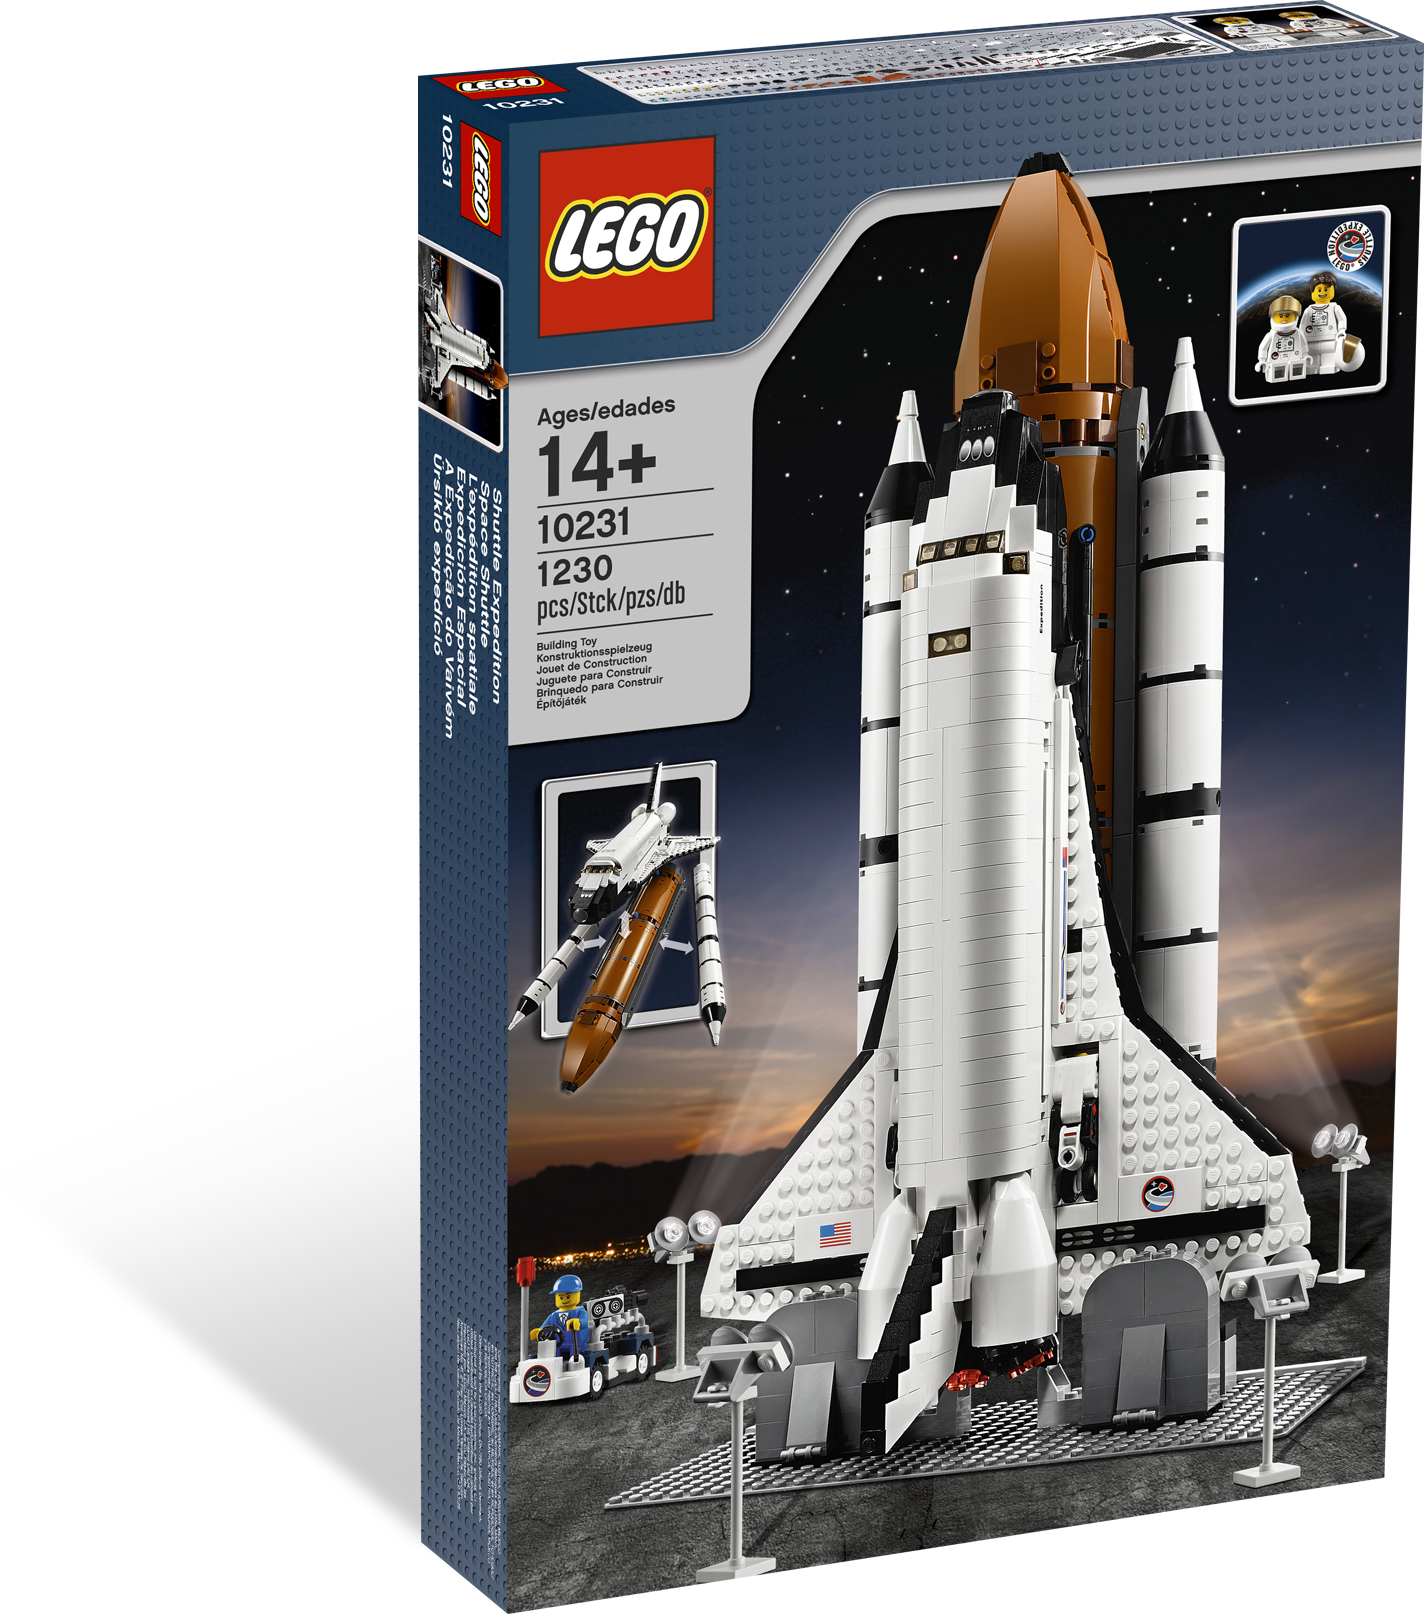 Shuttle Expedition